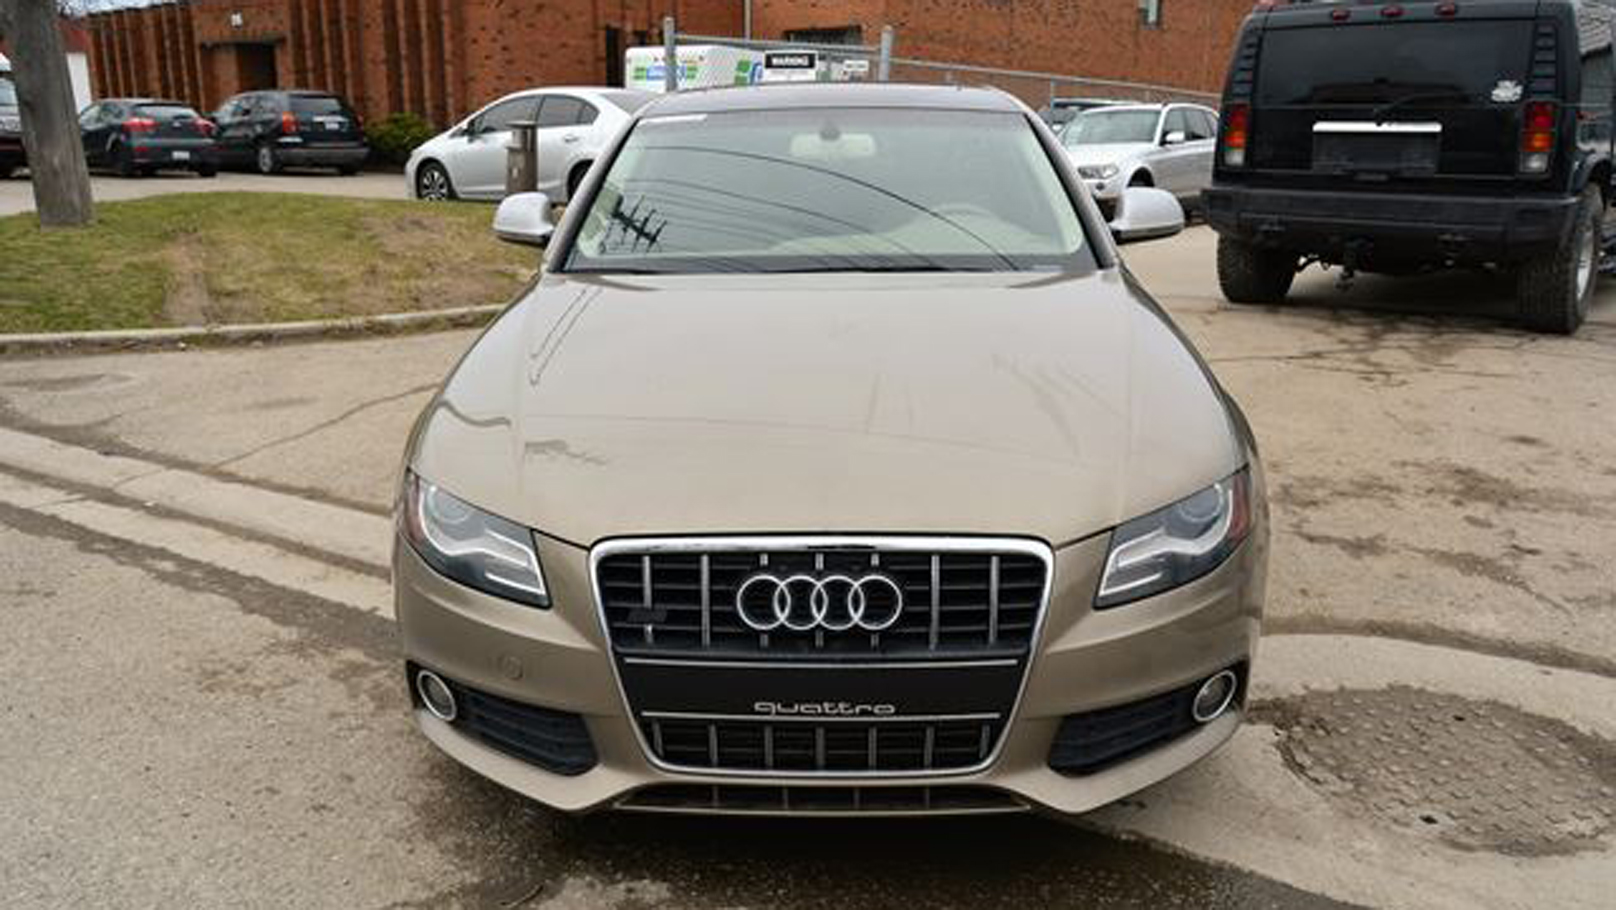 audi a4 2009 used car under $10K